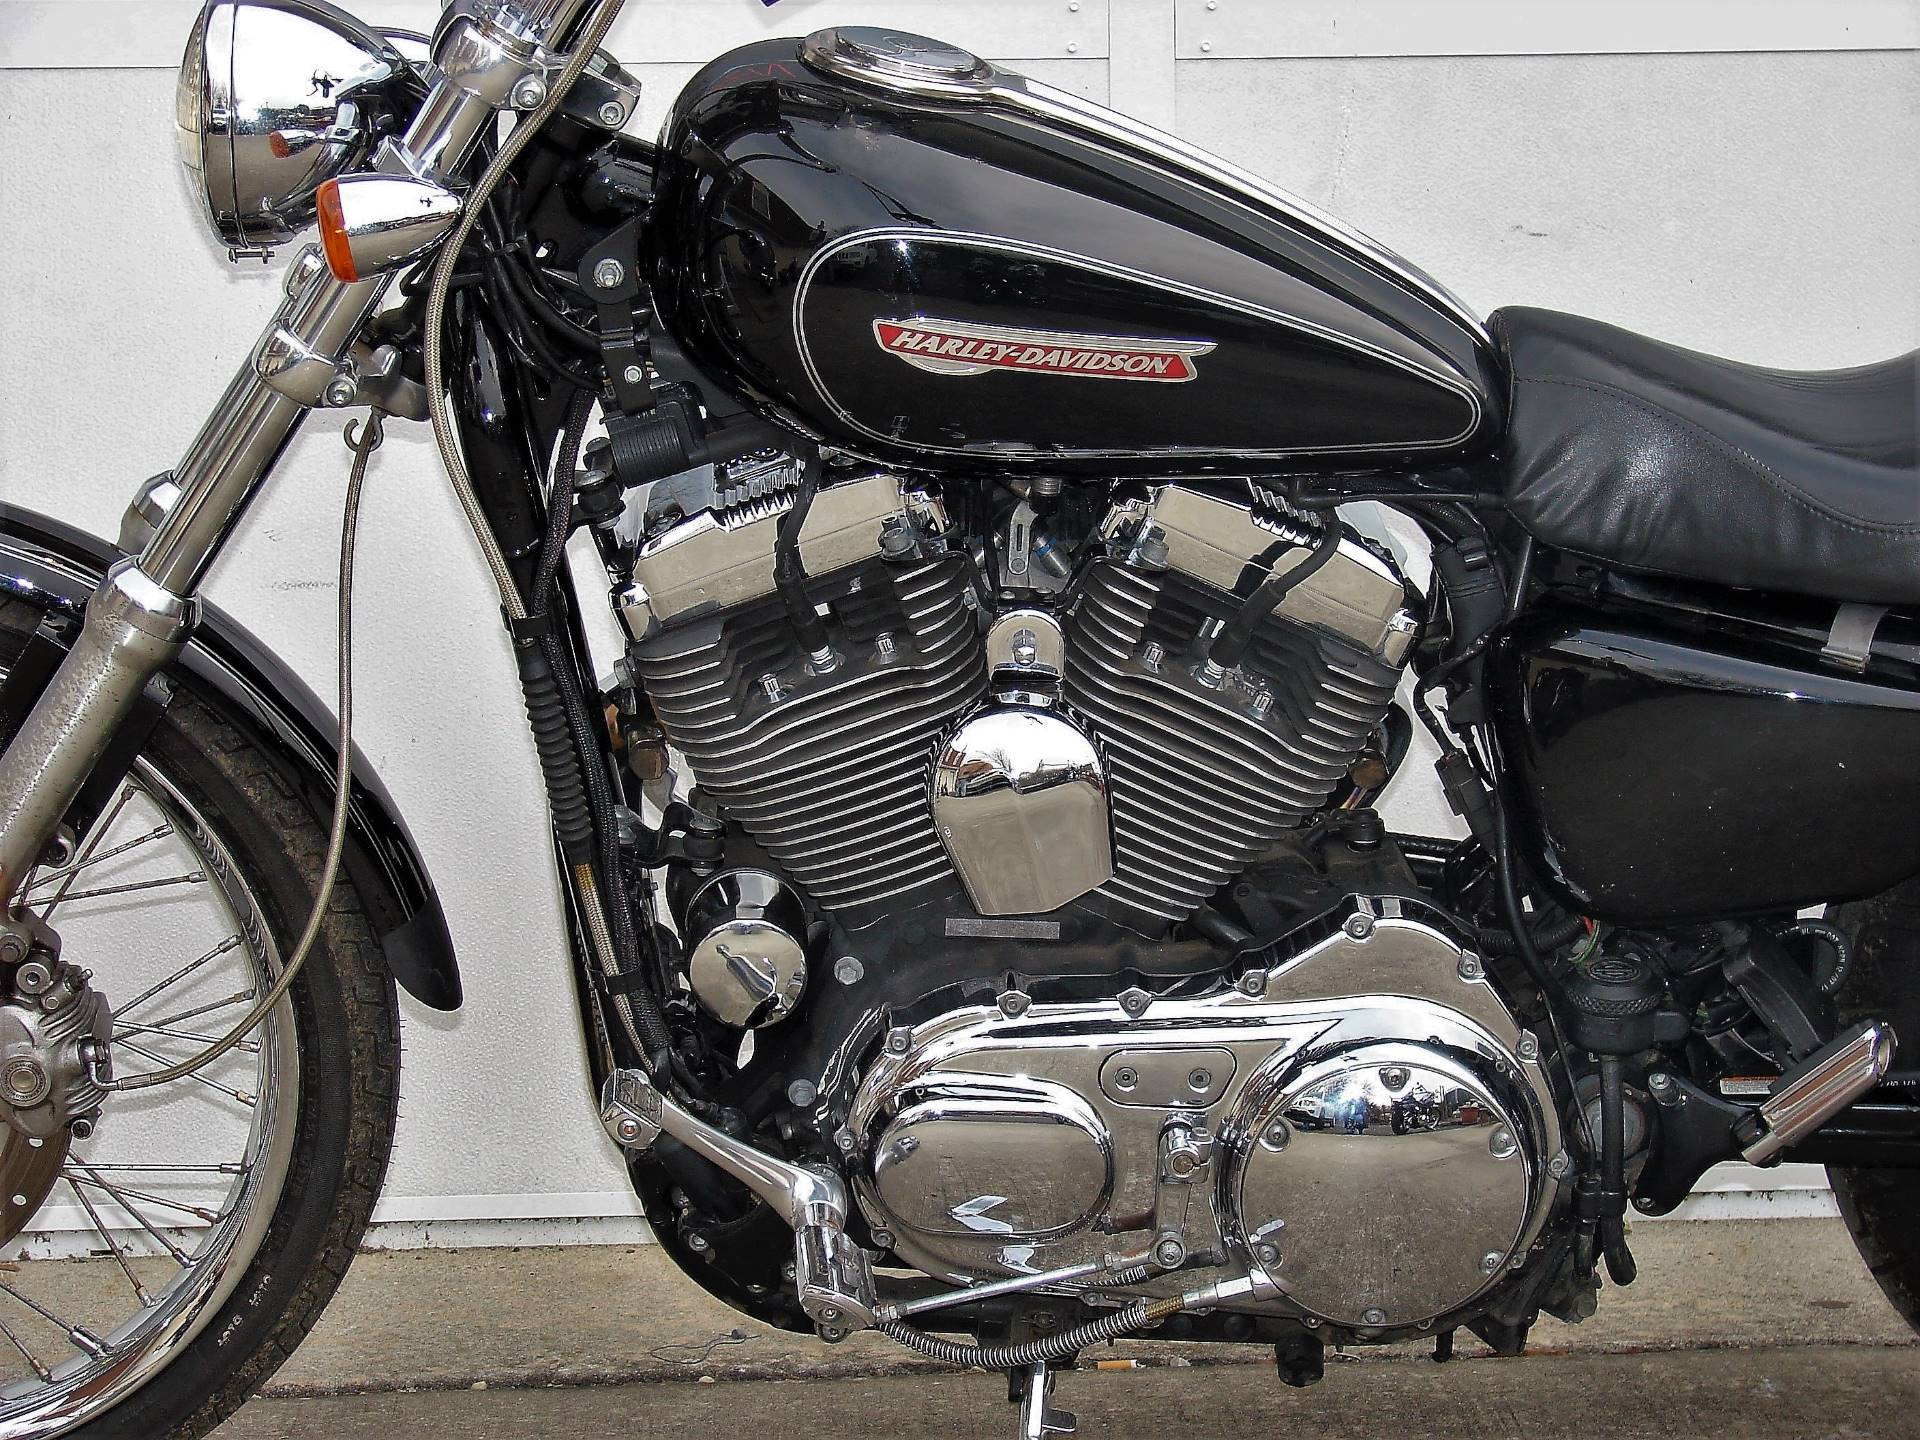 2008 Harley-Davidson 1200cc Sportster  (Black with Silver Pinstripe) in Williamstown, New Jersey